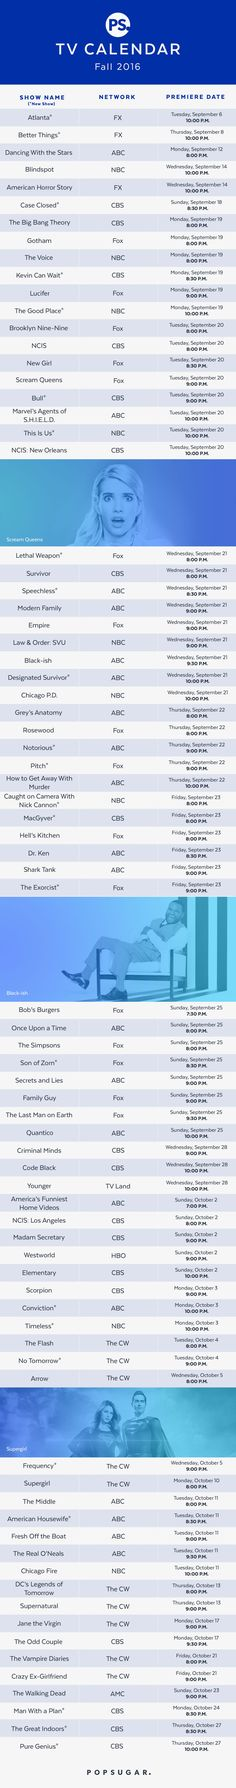 Don't miss a single show this Fall with thisl TV Calendar 2016